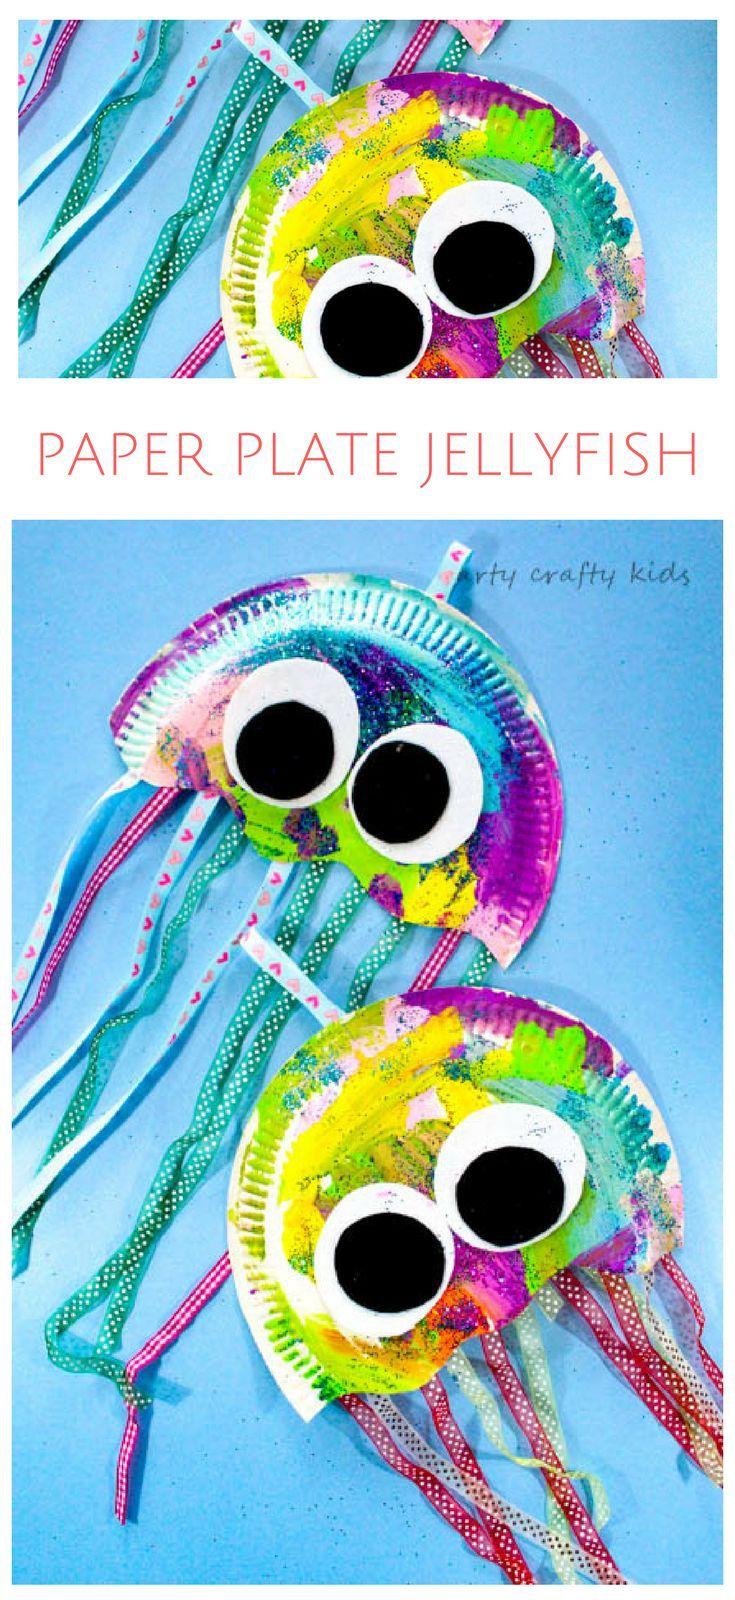 Paper Plate Jellyfish Craft Summer Camp Paper Plate Crafts For